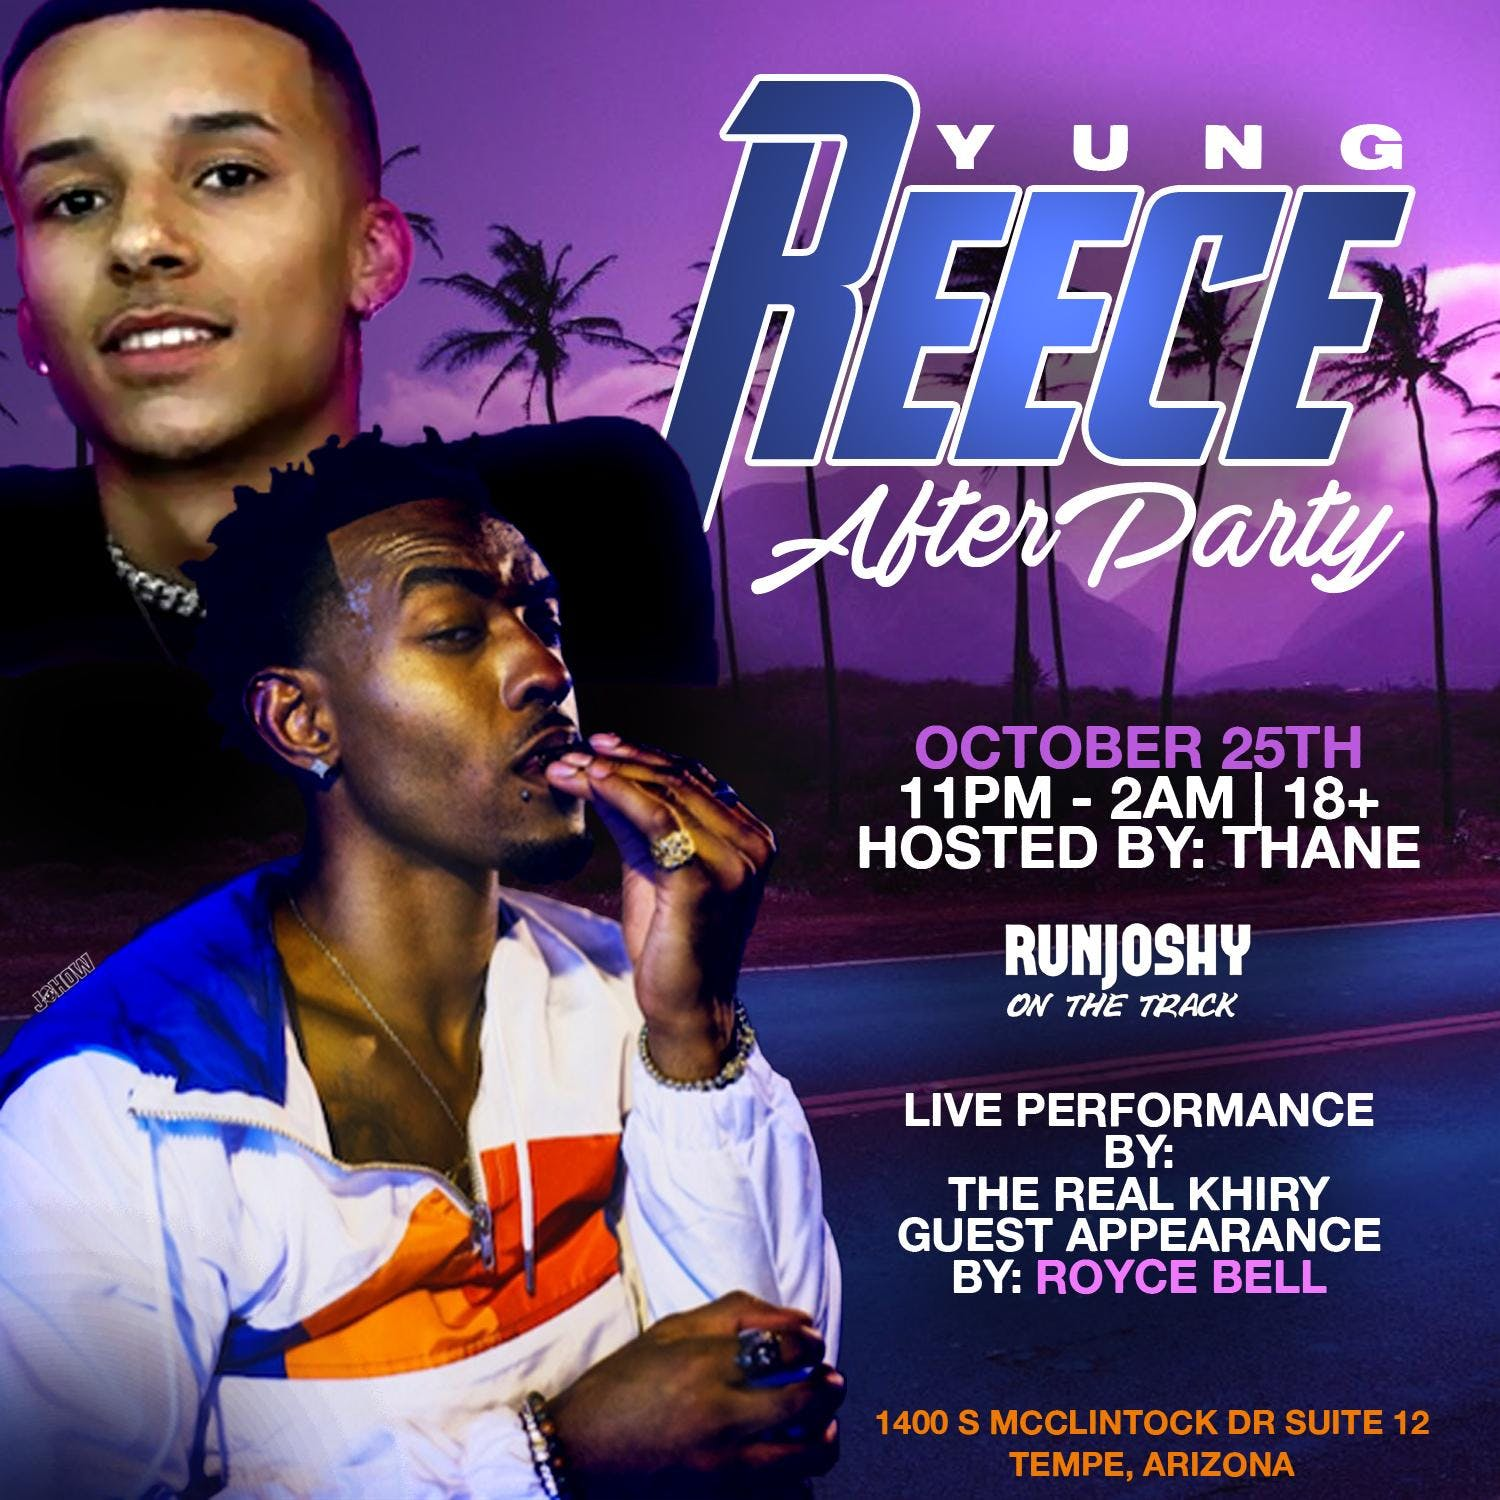 Yung Reece Official After Party